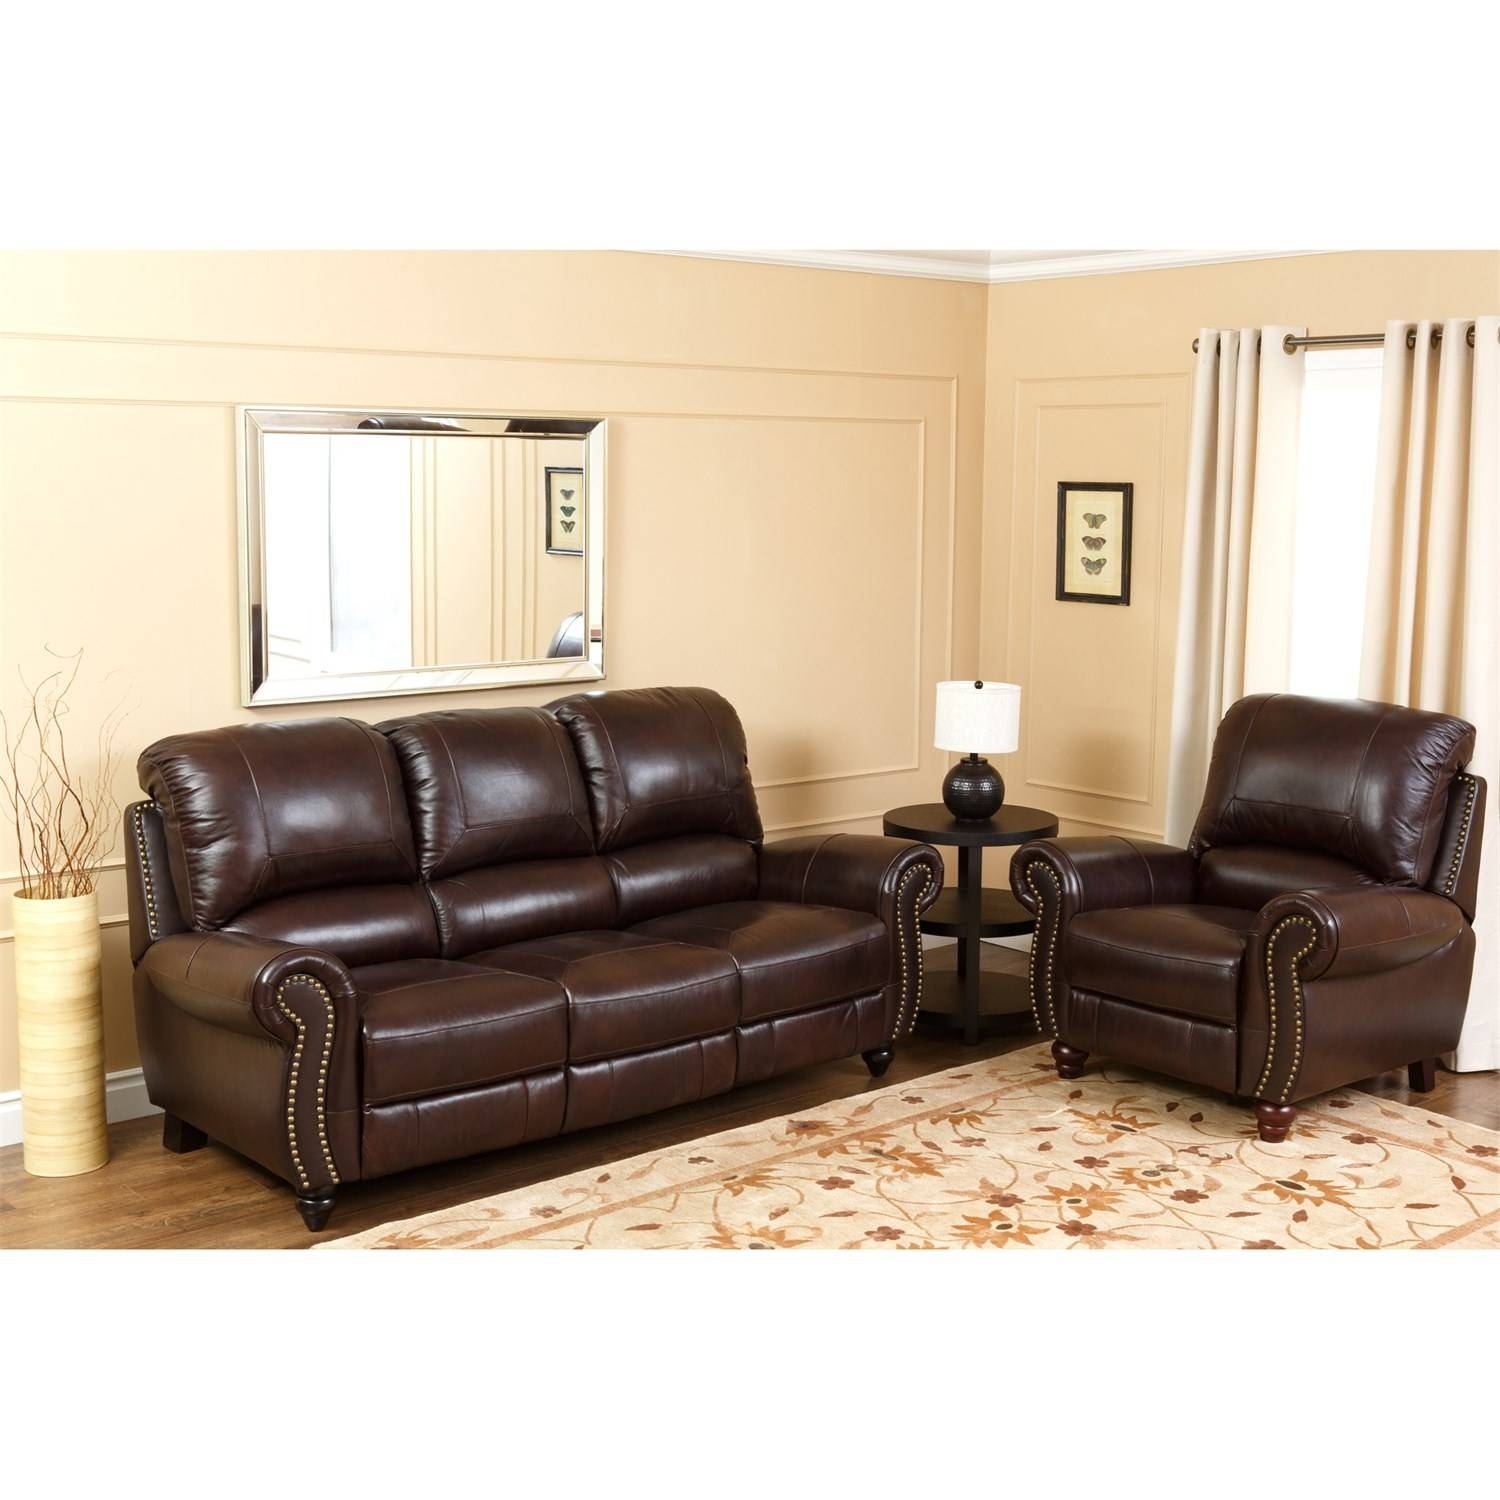 Abbyson Living Ch-8857-Brg-3/1 Canterbury Leather Pushback inside Abbyson Living Sofas (Image 1 of 15)